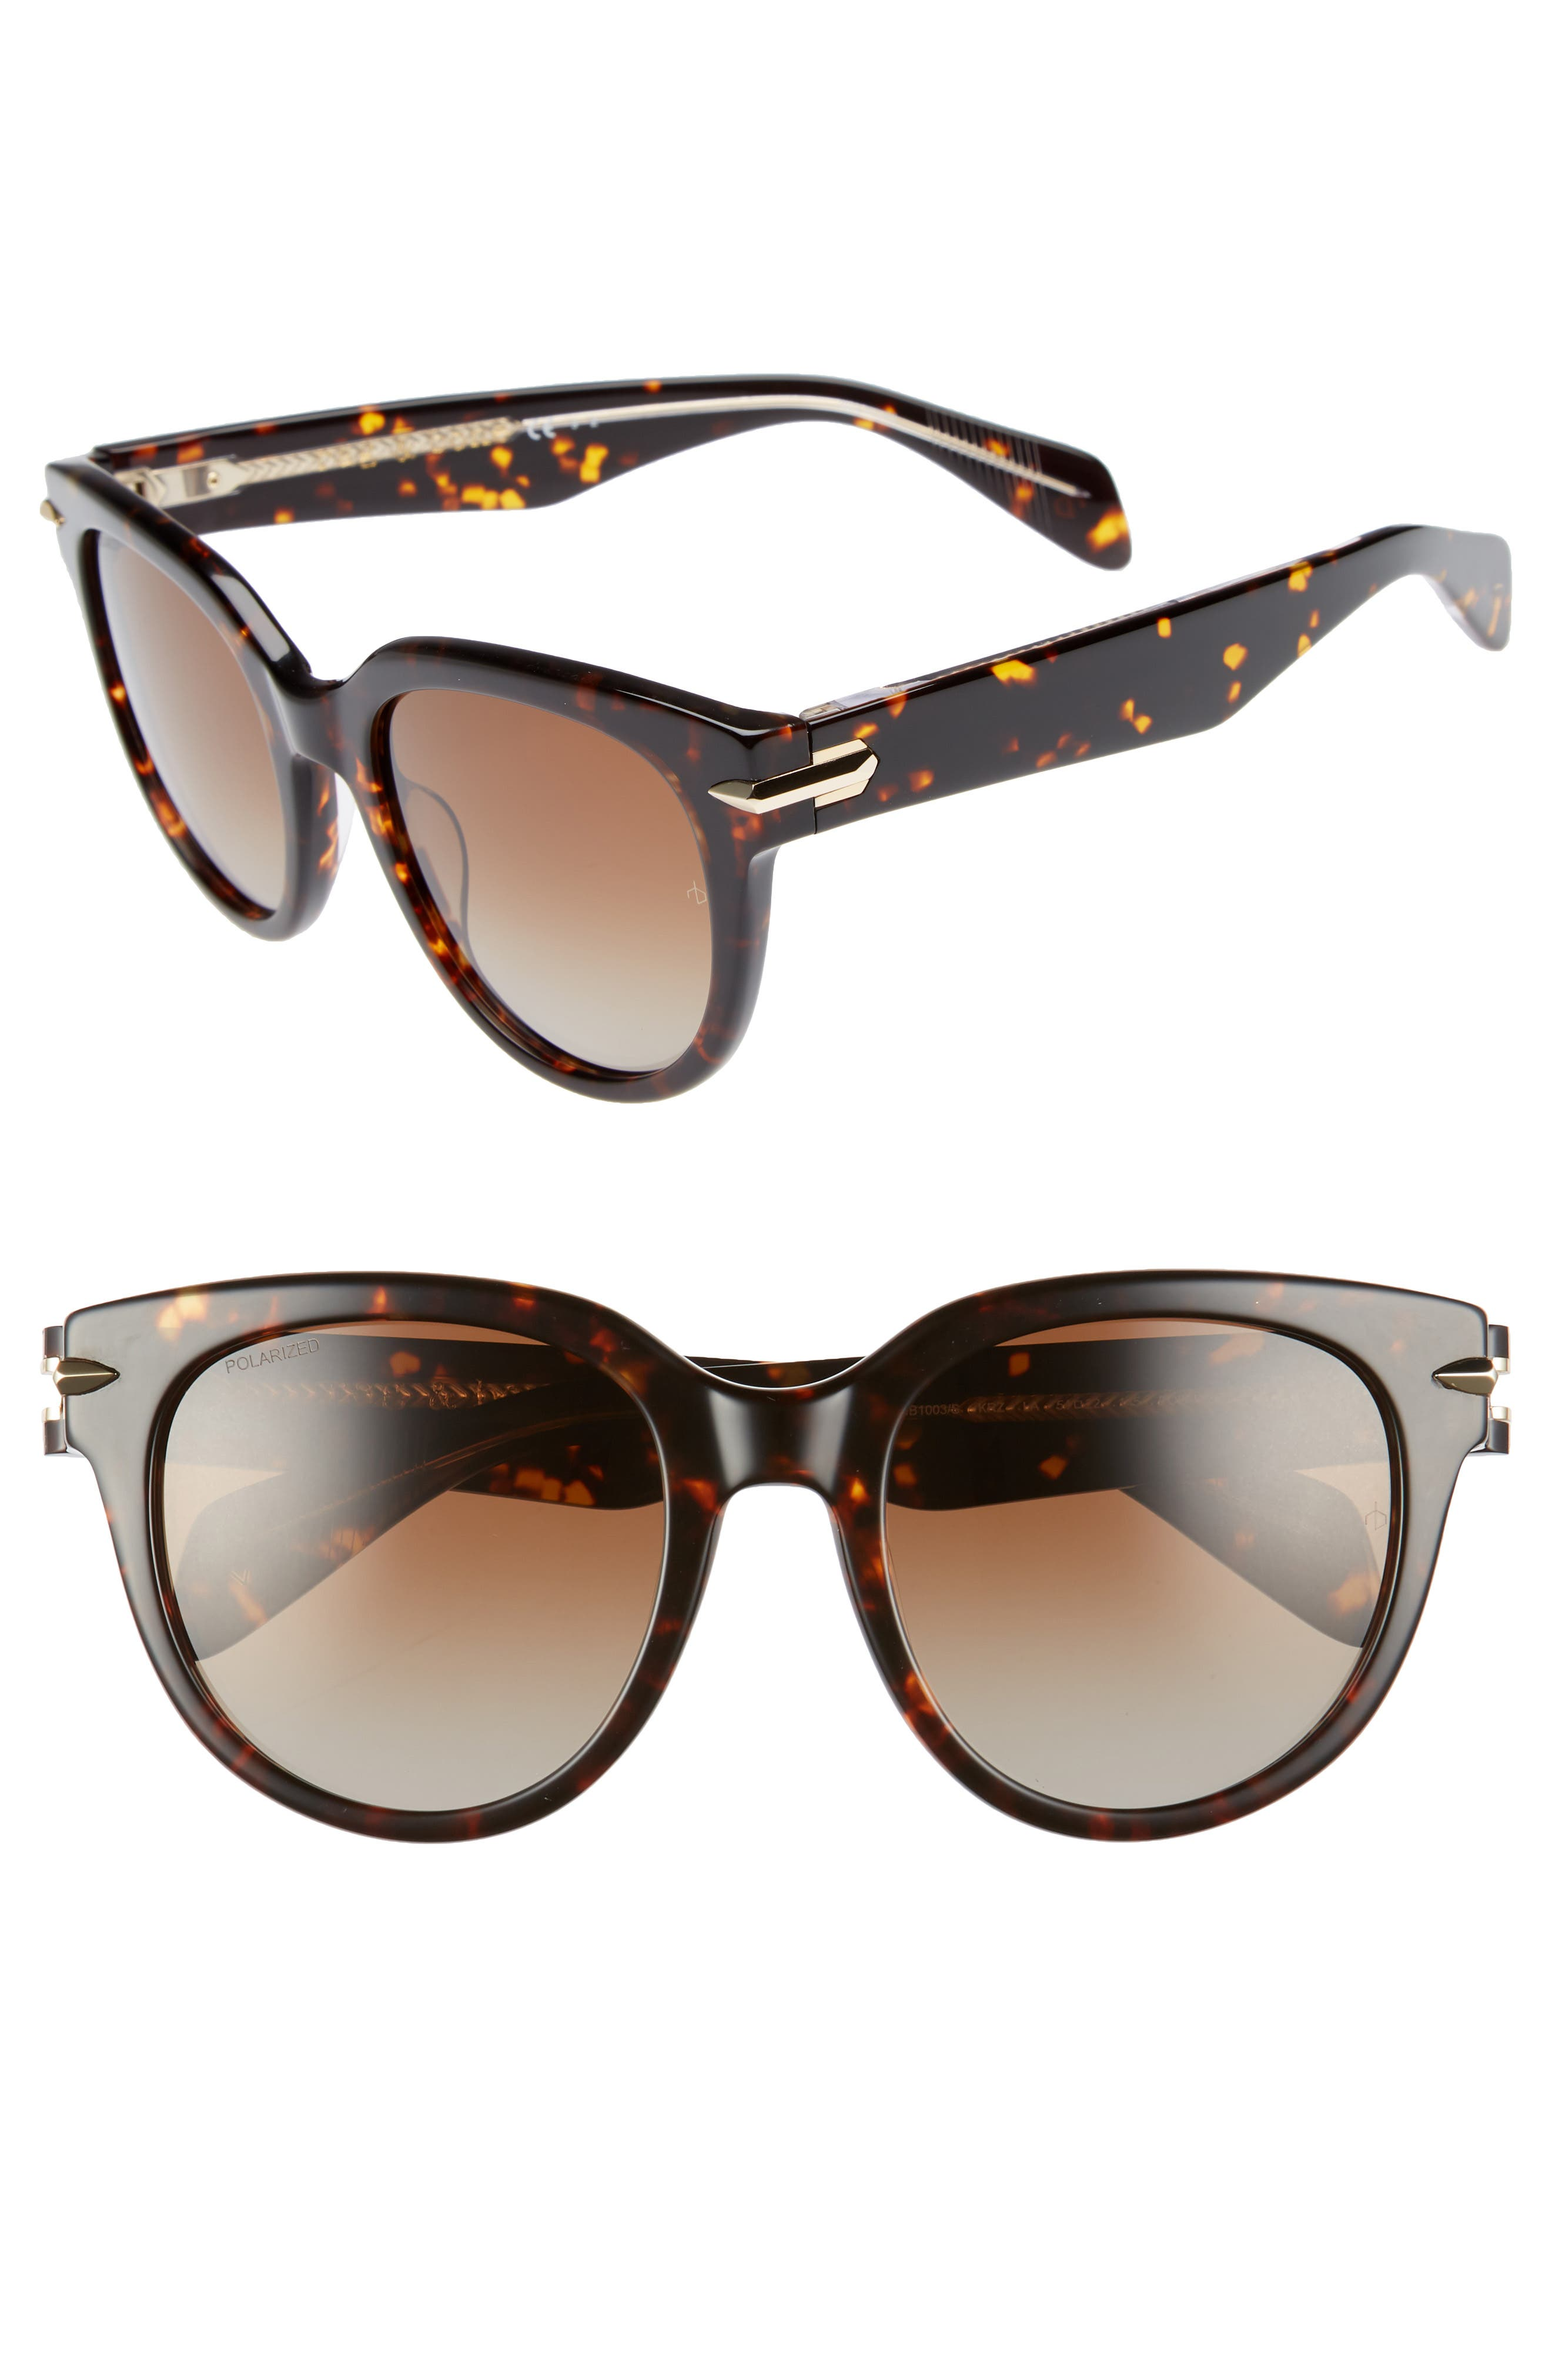 54mm Round Sunglasses,                             Main thumbnail 1, color,                             Havana/ Crystal